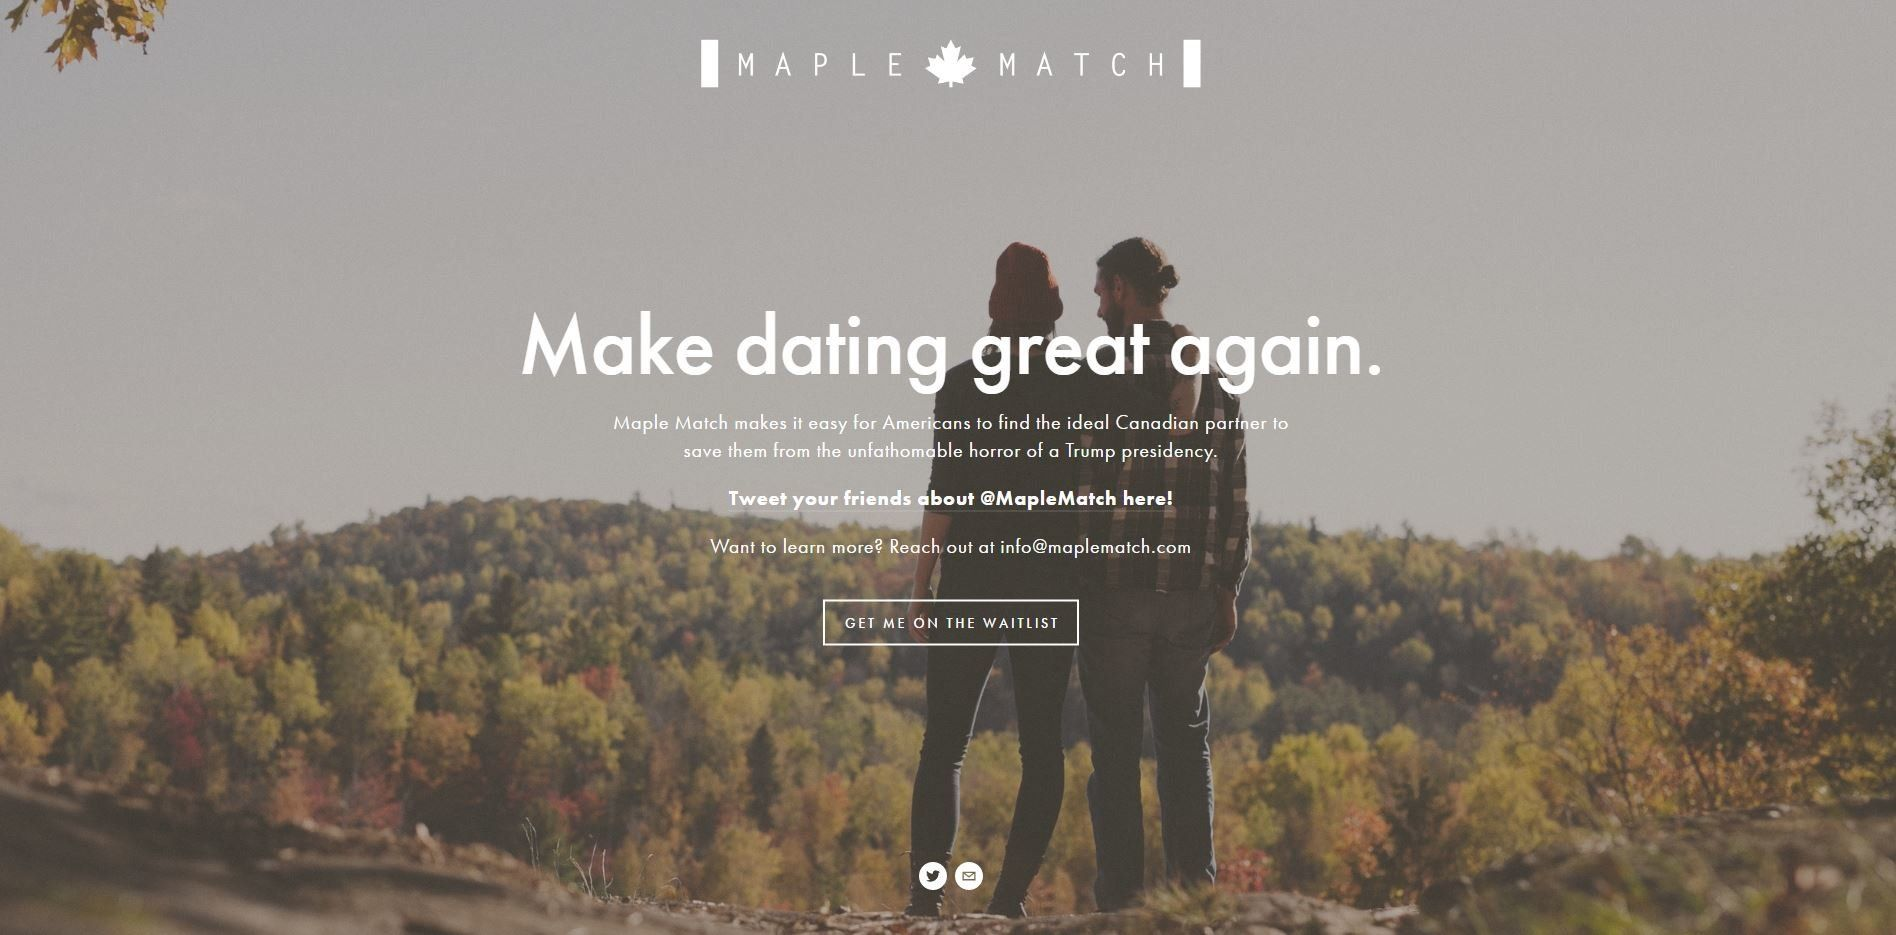 canadian dating site maple match Maple match pairs americans and canadians in an effort to help american 'refugees' move to canada make dating great again, the site promises.